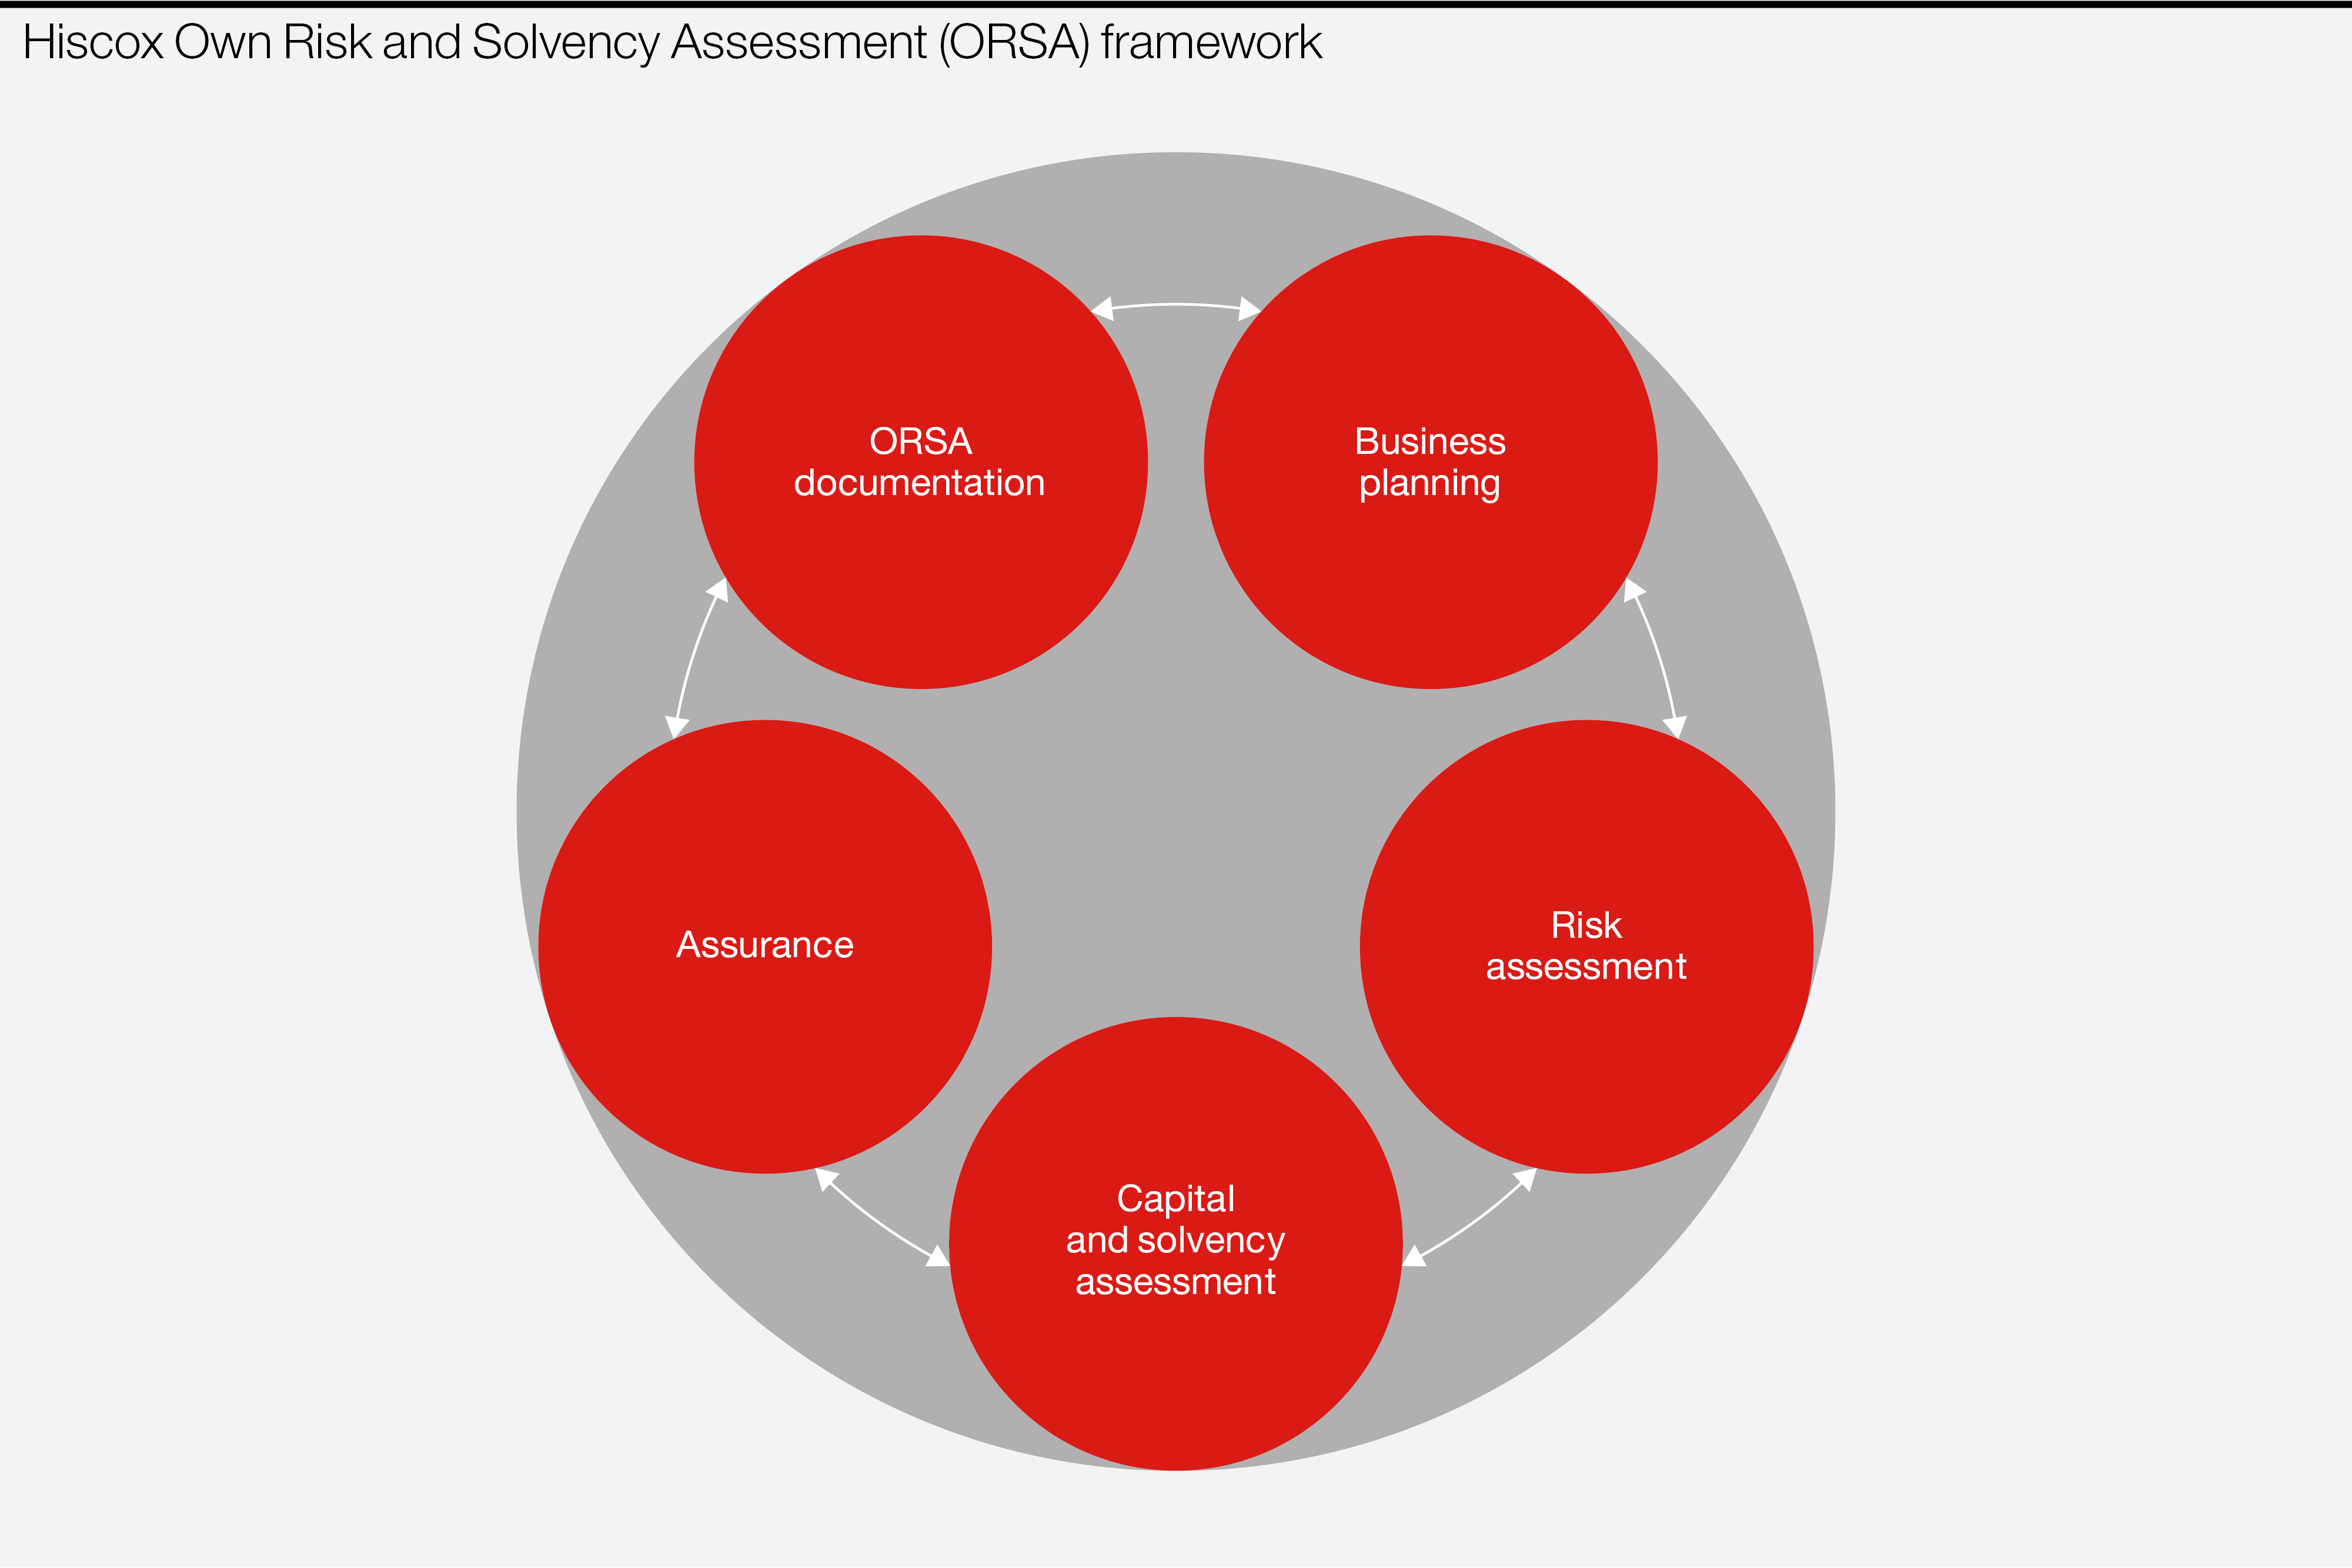 Hiscox Own Risk and Solvency Assessment (ORSA) governance